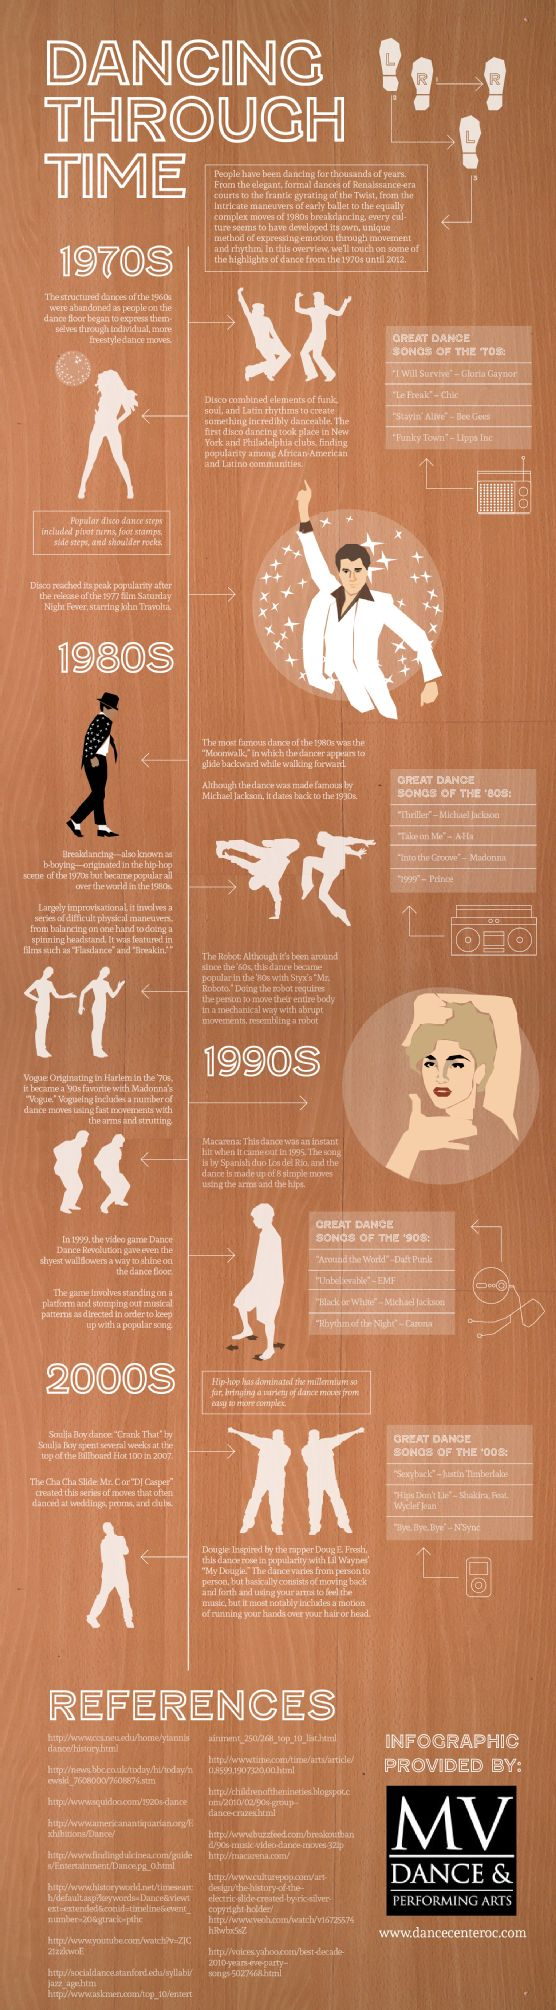 Dancing is one of the oldest and most popular forms of creative expression on the planet. With a history dating back hundreds of years, people have changed the way they shake their moneymaker for centuries. See where dance has come from when you check out this infographic.    Original source: http://www.dancecenteroc.com/561918/2012/10/05/dancing-through-time-infographic.html.